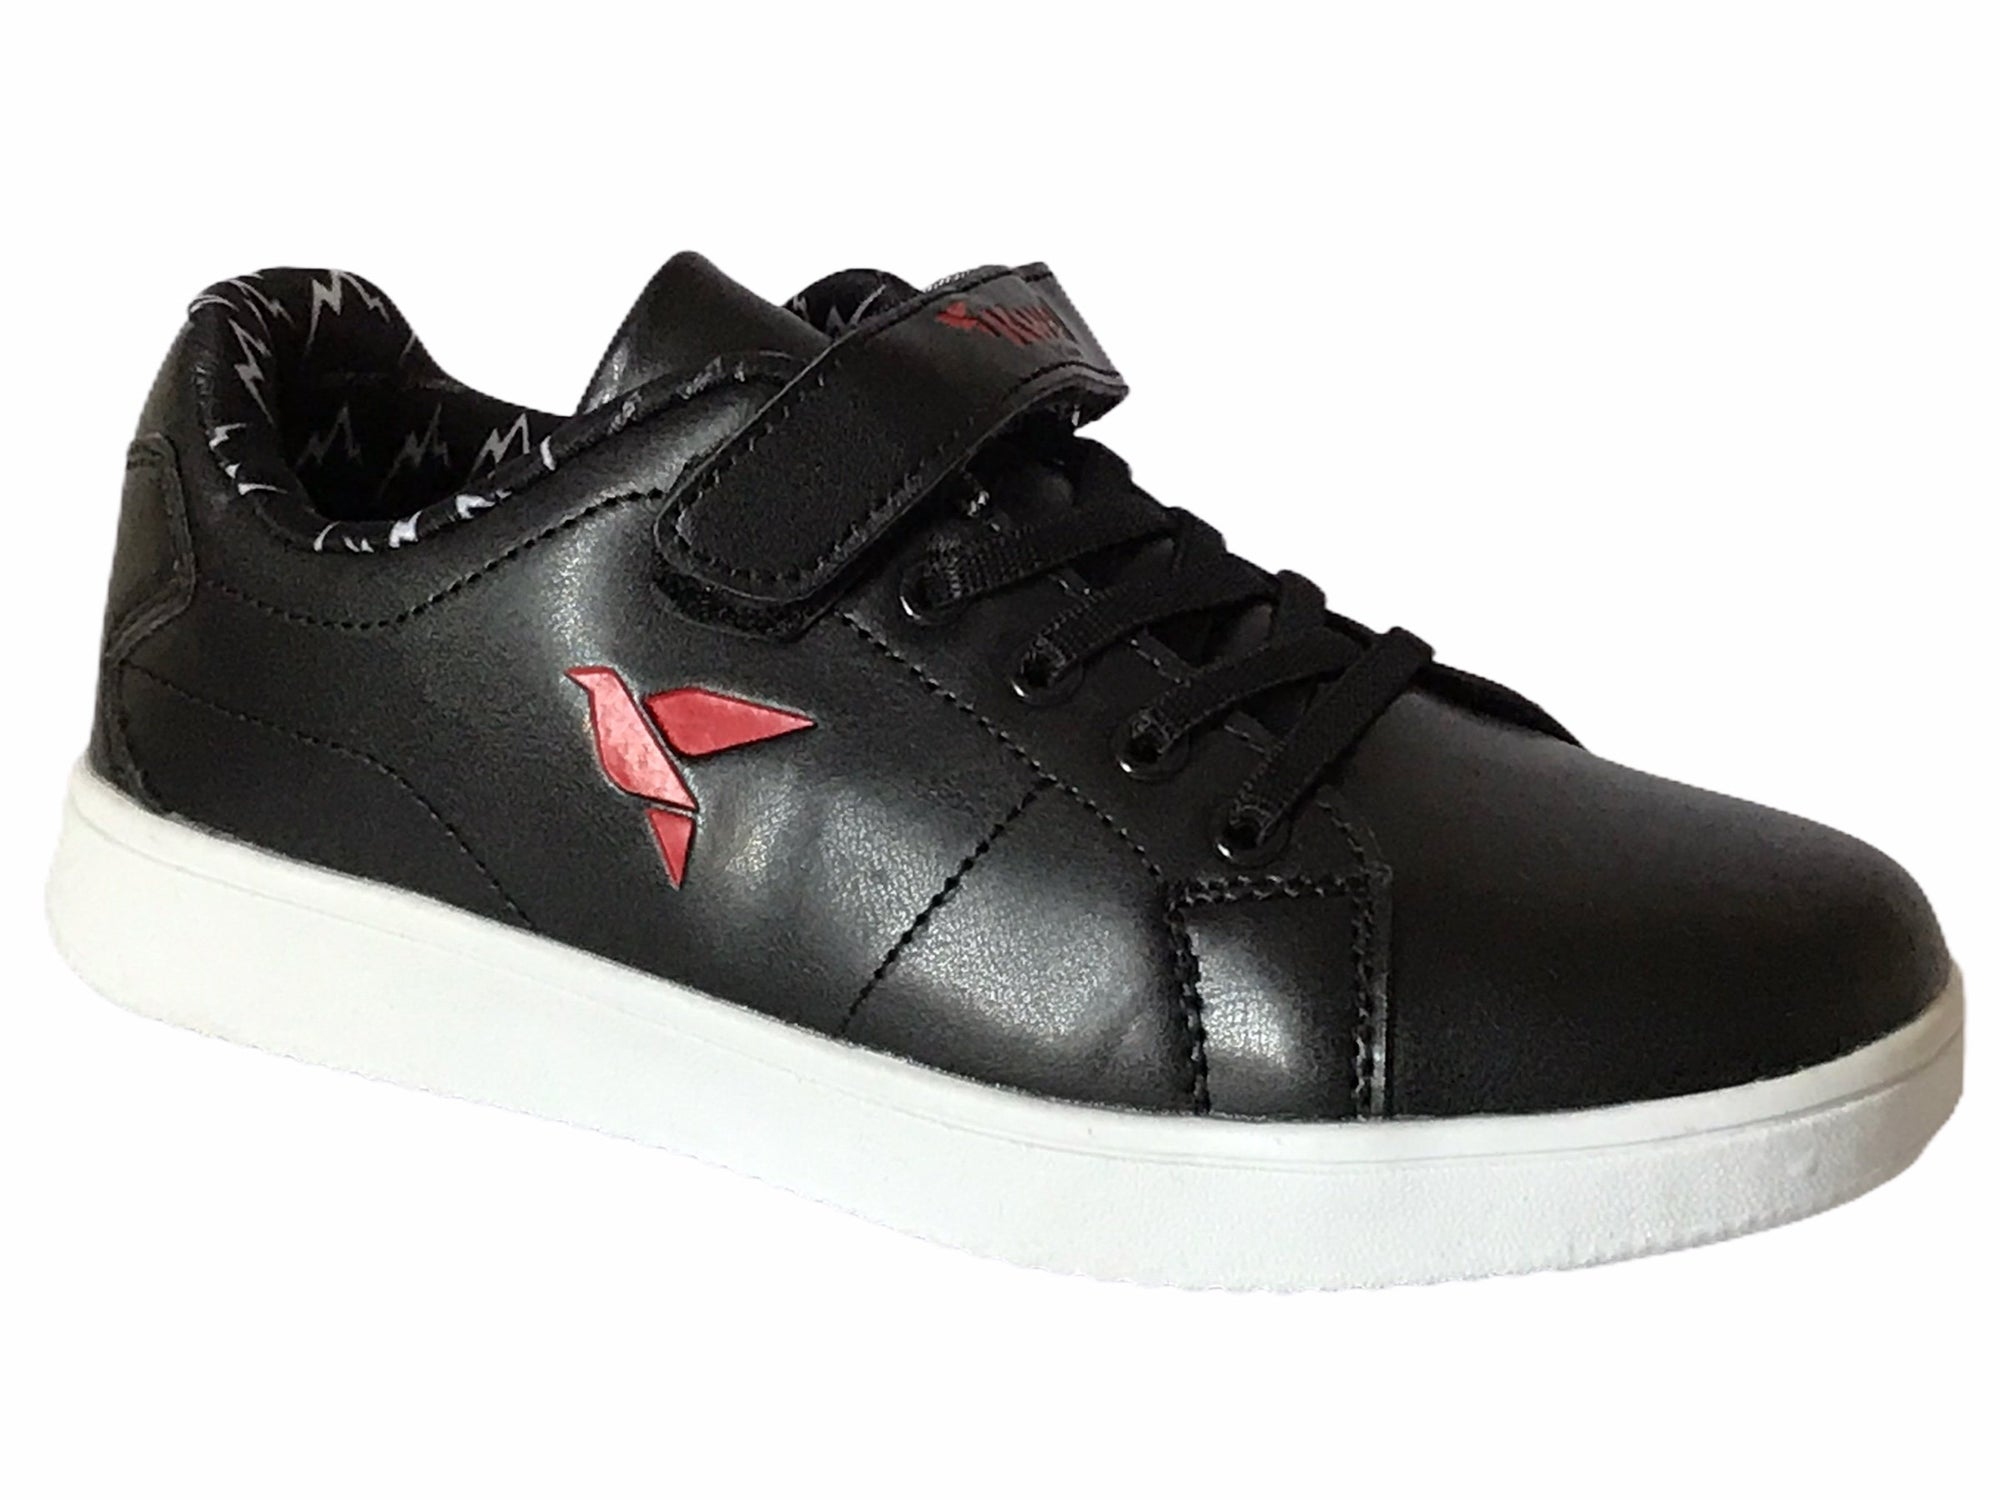 Kwell Black Trainers Shoes